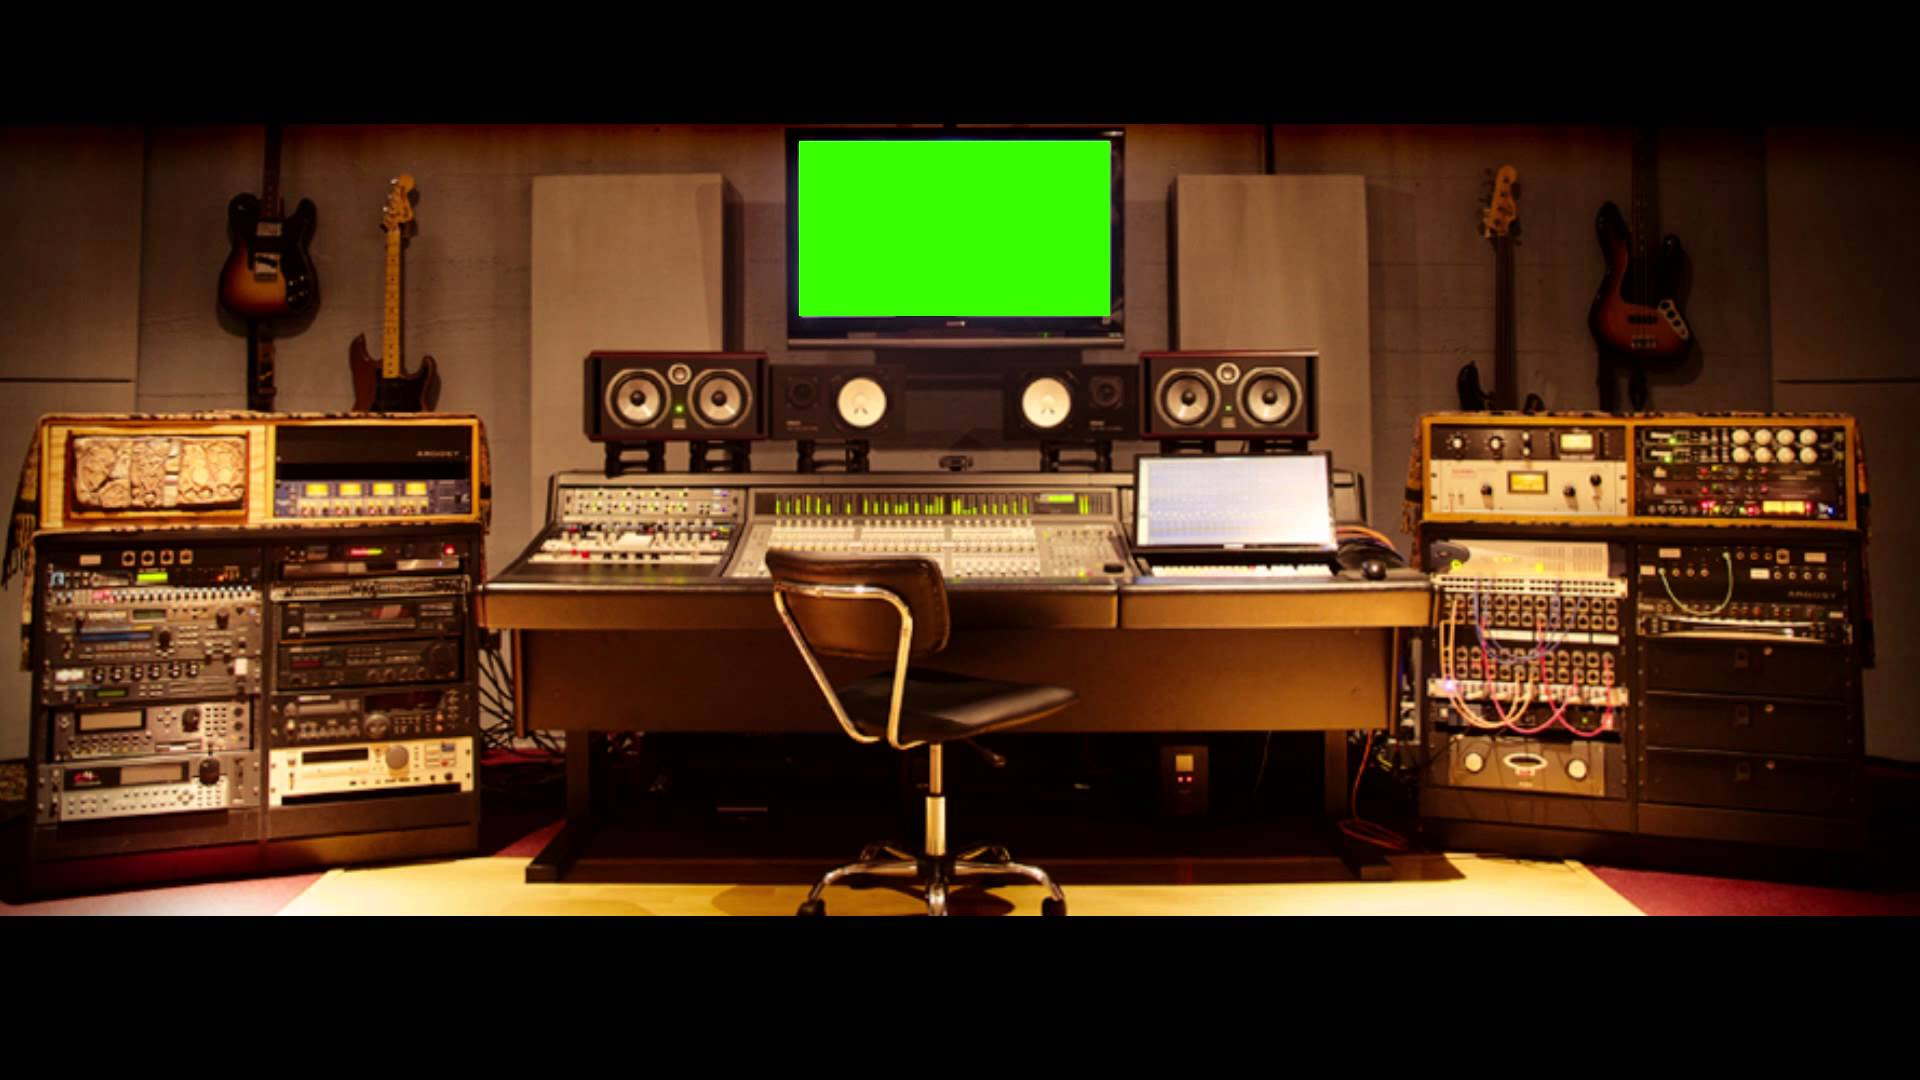 30 Beautiful Music Studio Wallpapers FHDQ